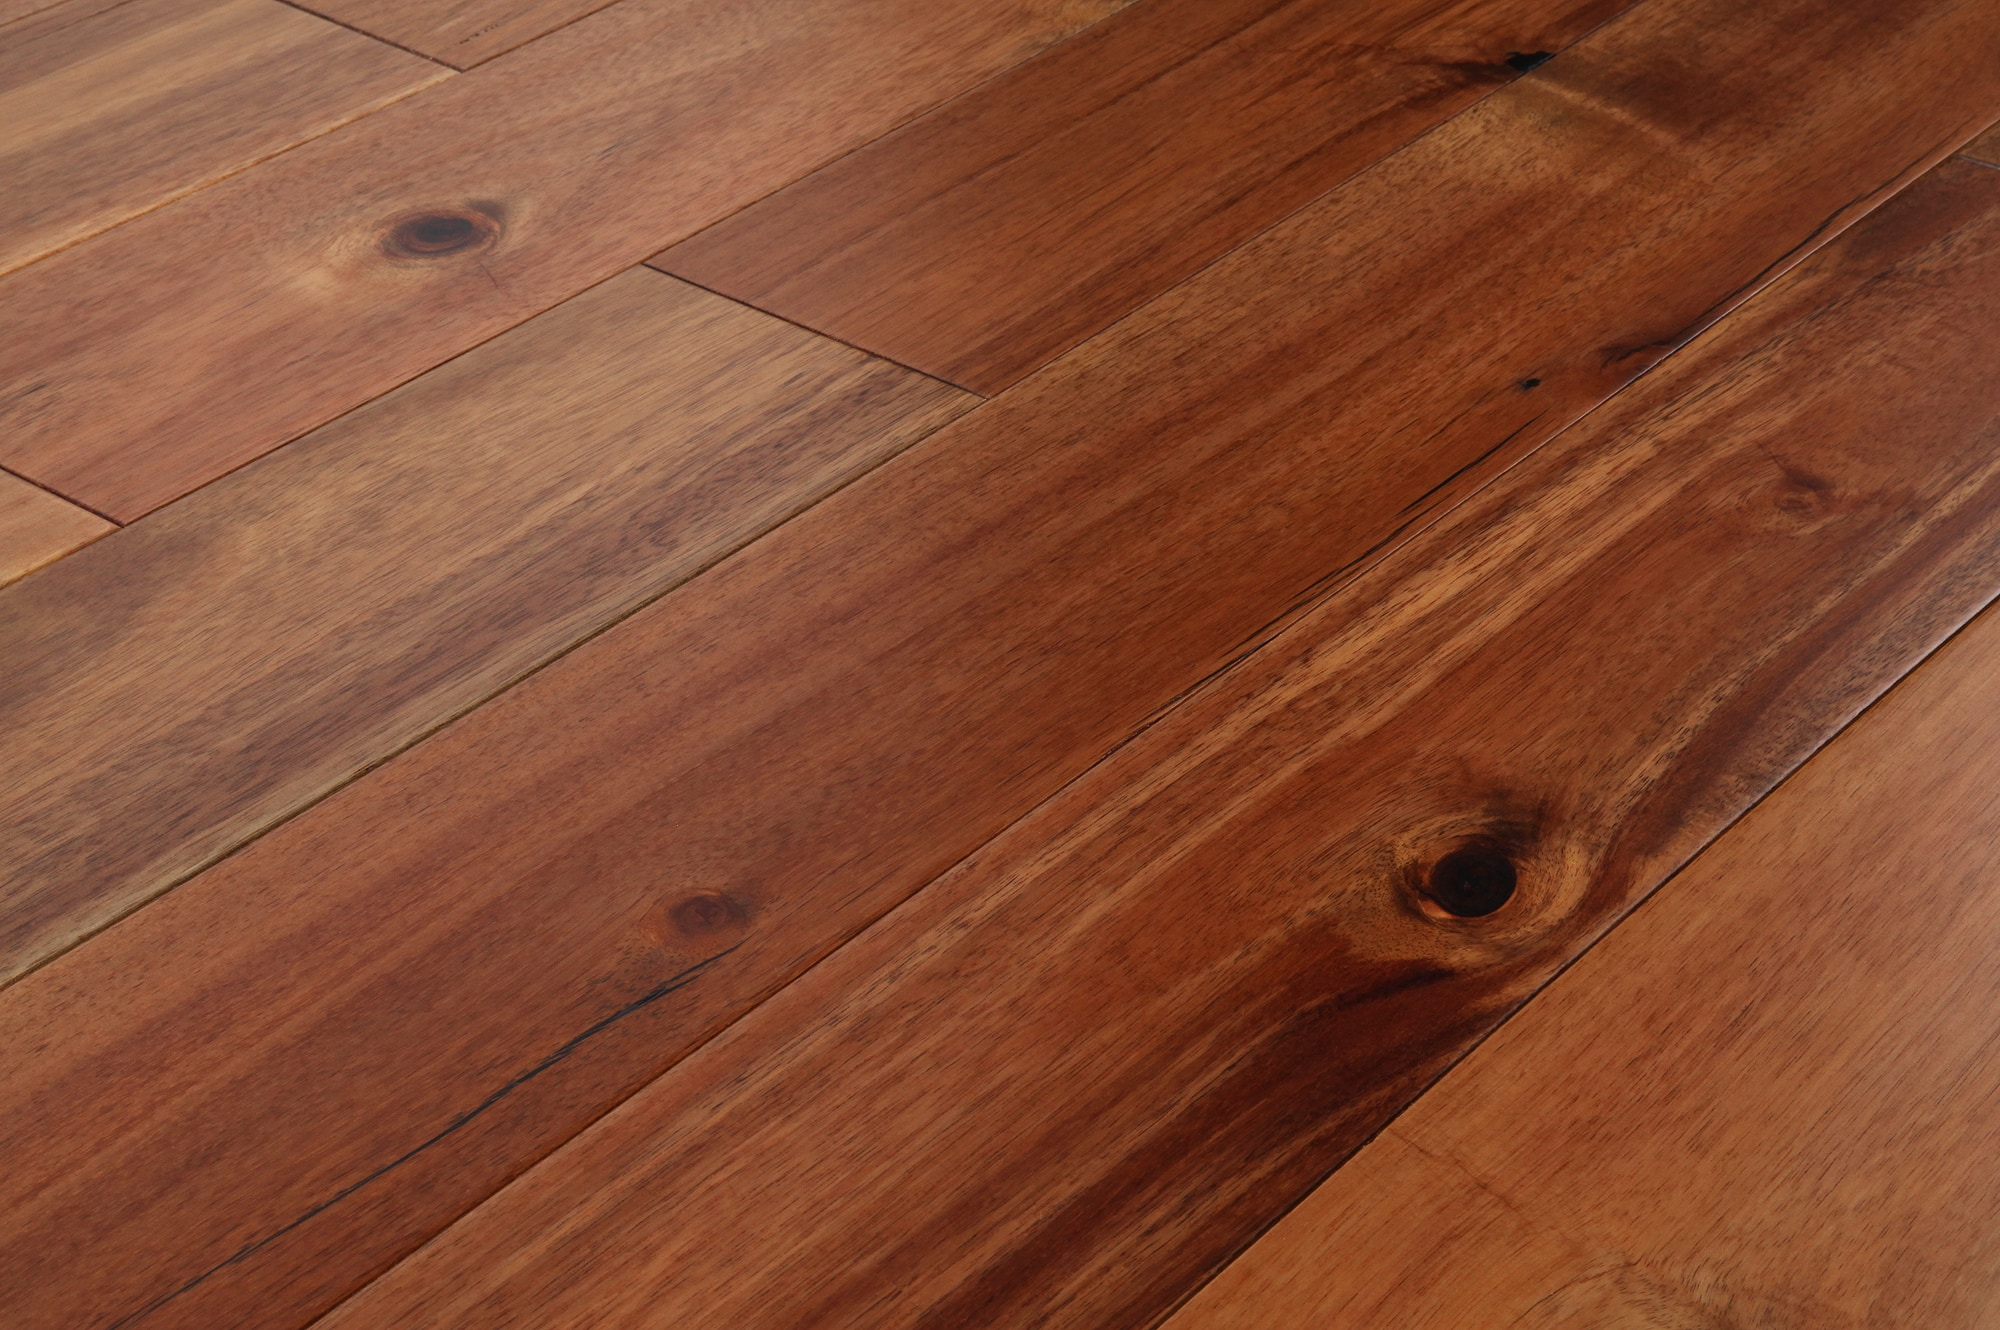 Mazama Hardwood Smooth Acacia Collection Chai Beige